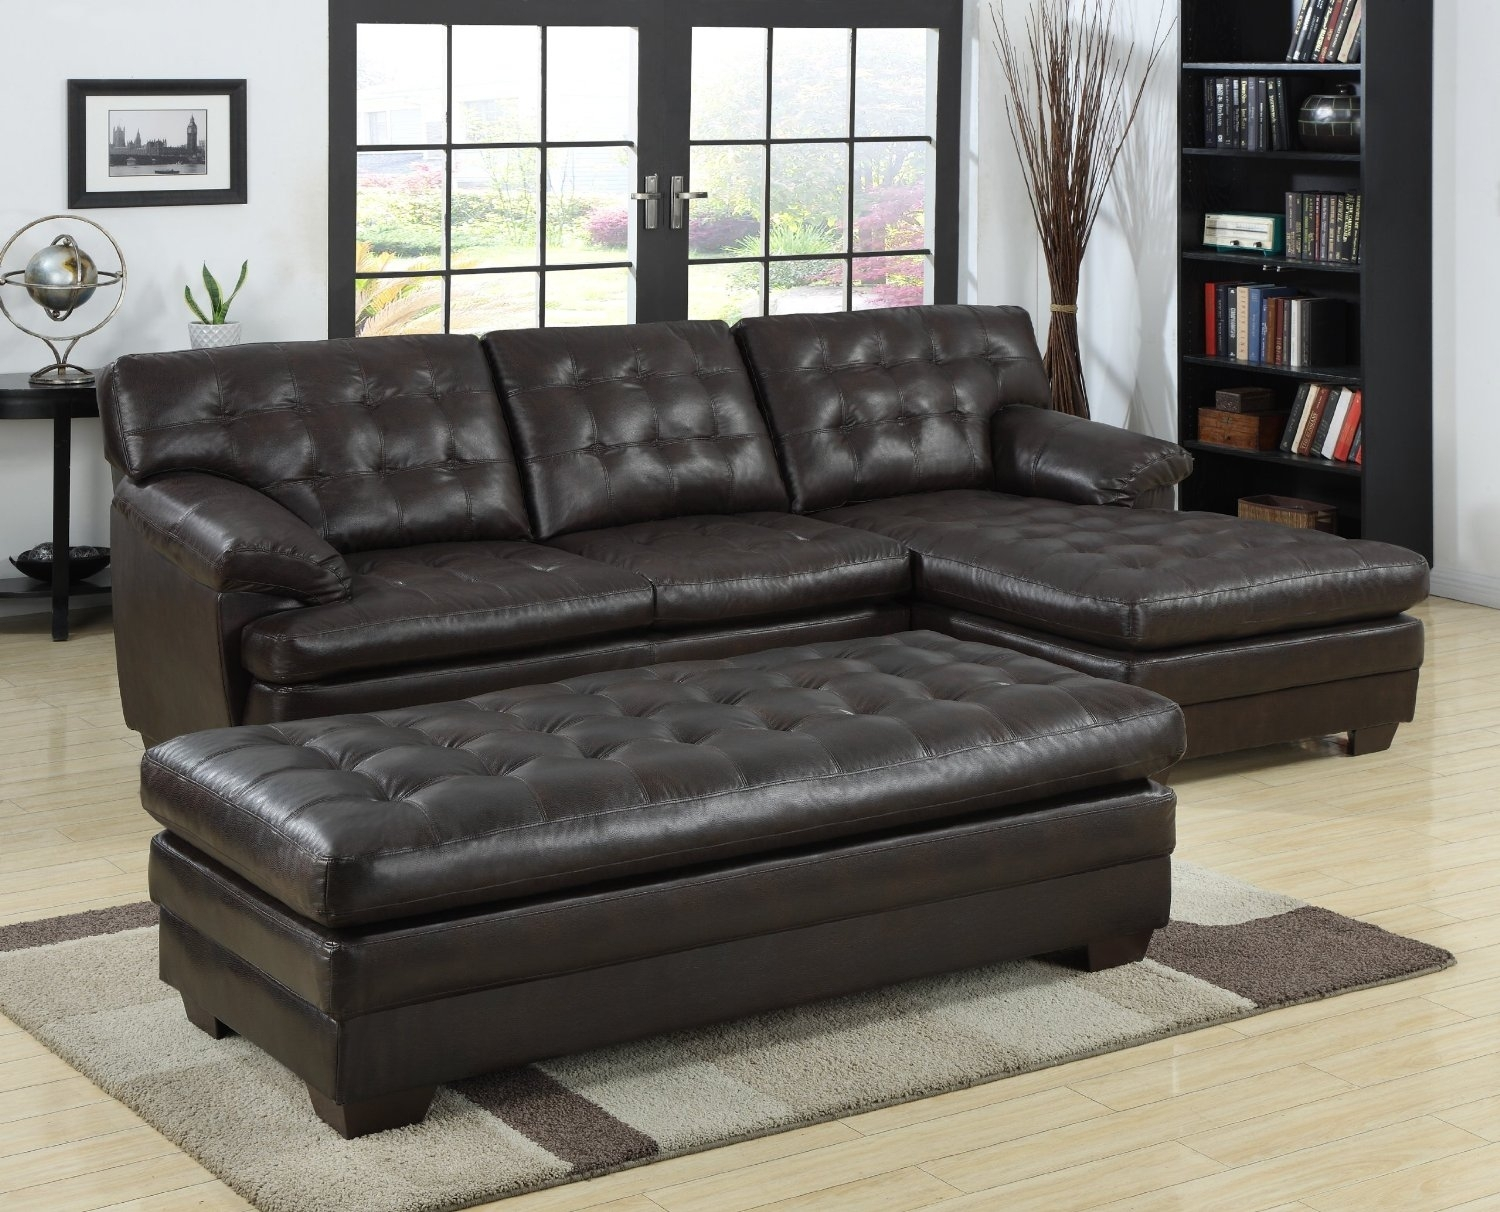 Cool Fancy 2 Piece Sectional Sofa With Chaise 61 For Your Home With Sectional Sofas With Chaise Lounge And Ottoman (View 12 of 15)